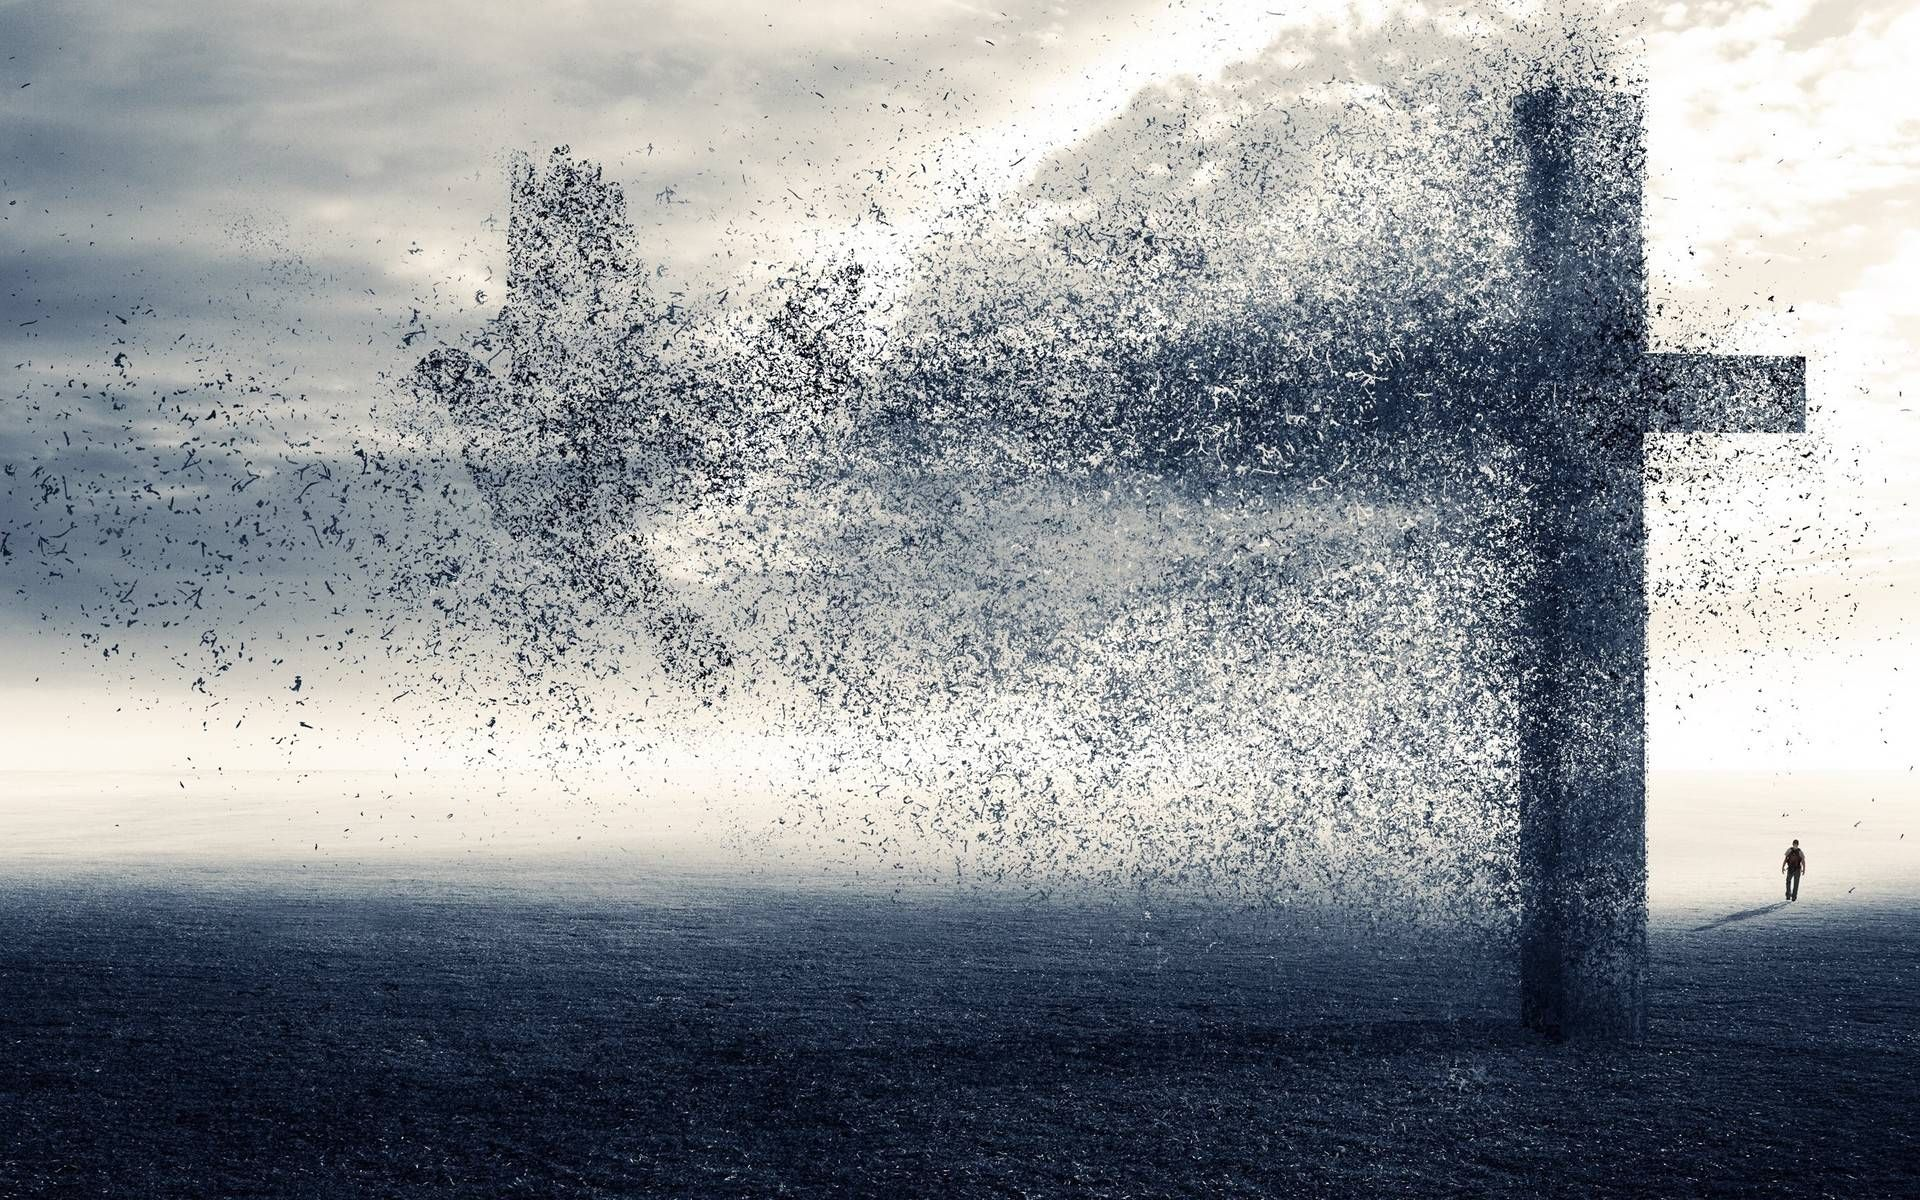 Religious cross wallpaper and backgrounds hd good quotes religious cross wallpaper and backgrounds hd voltagebd Gallery